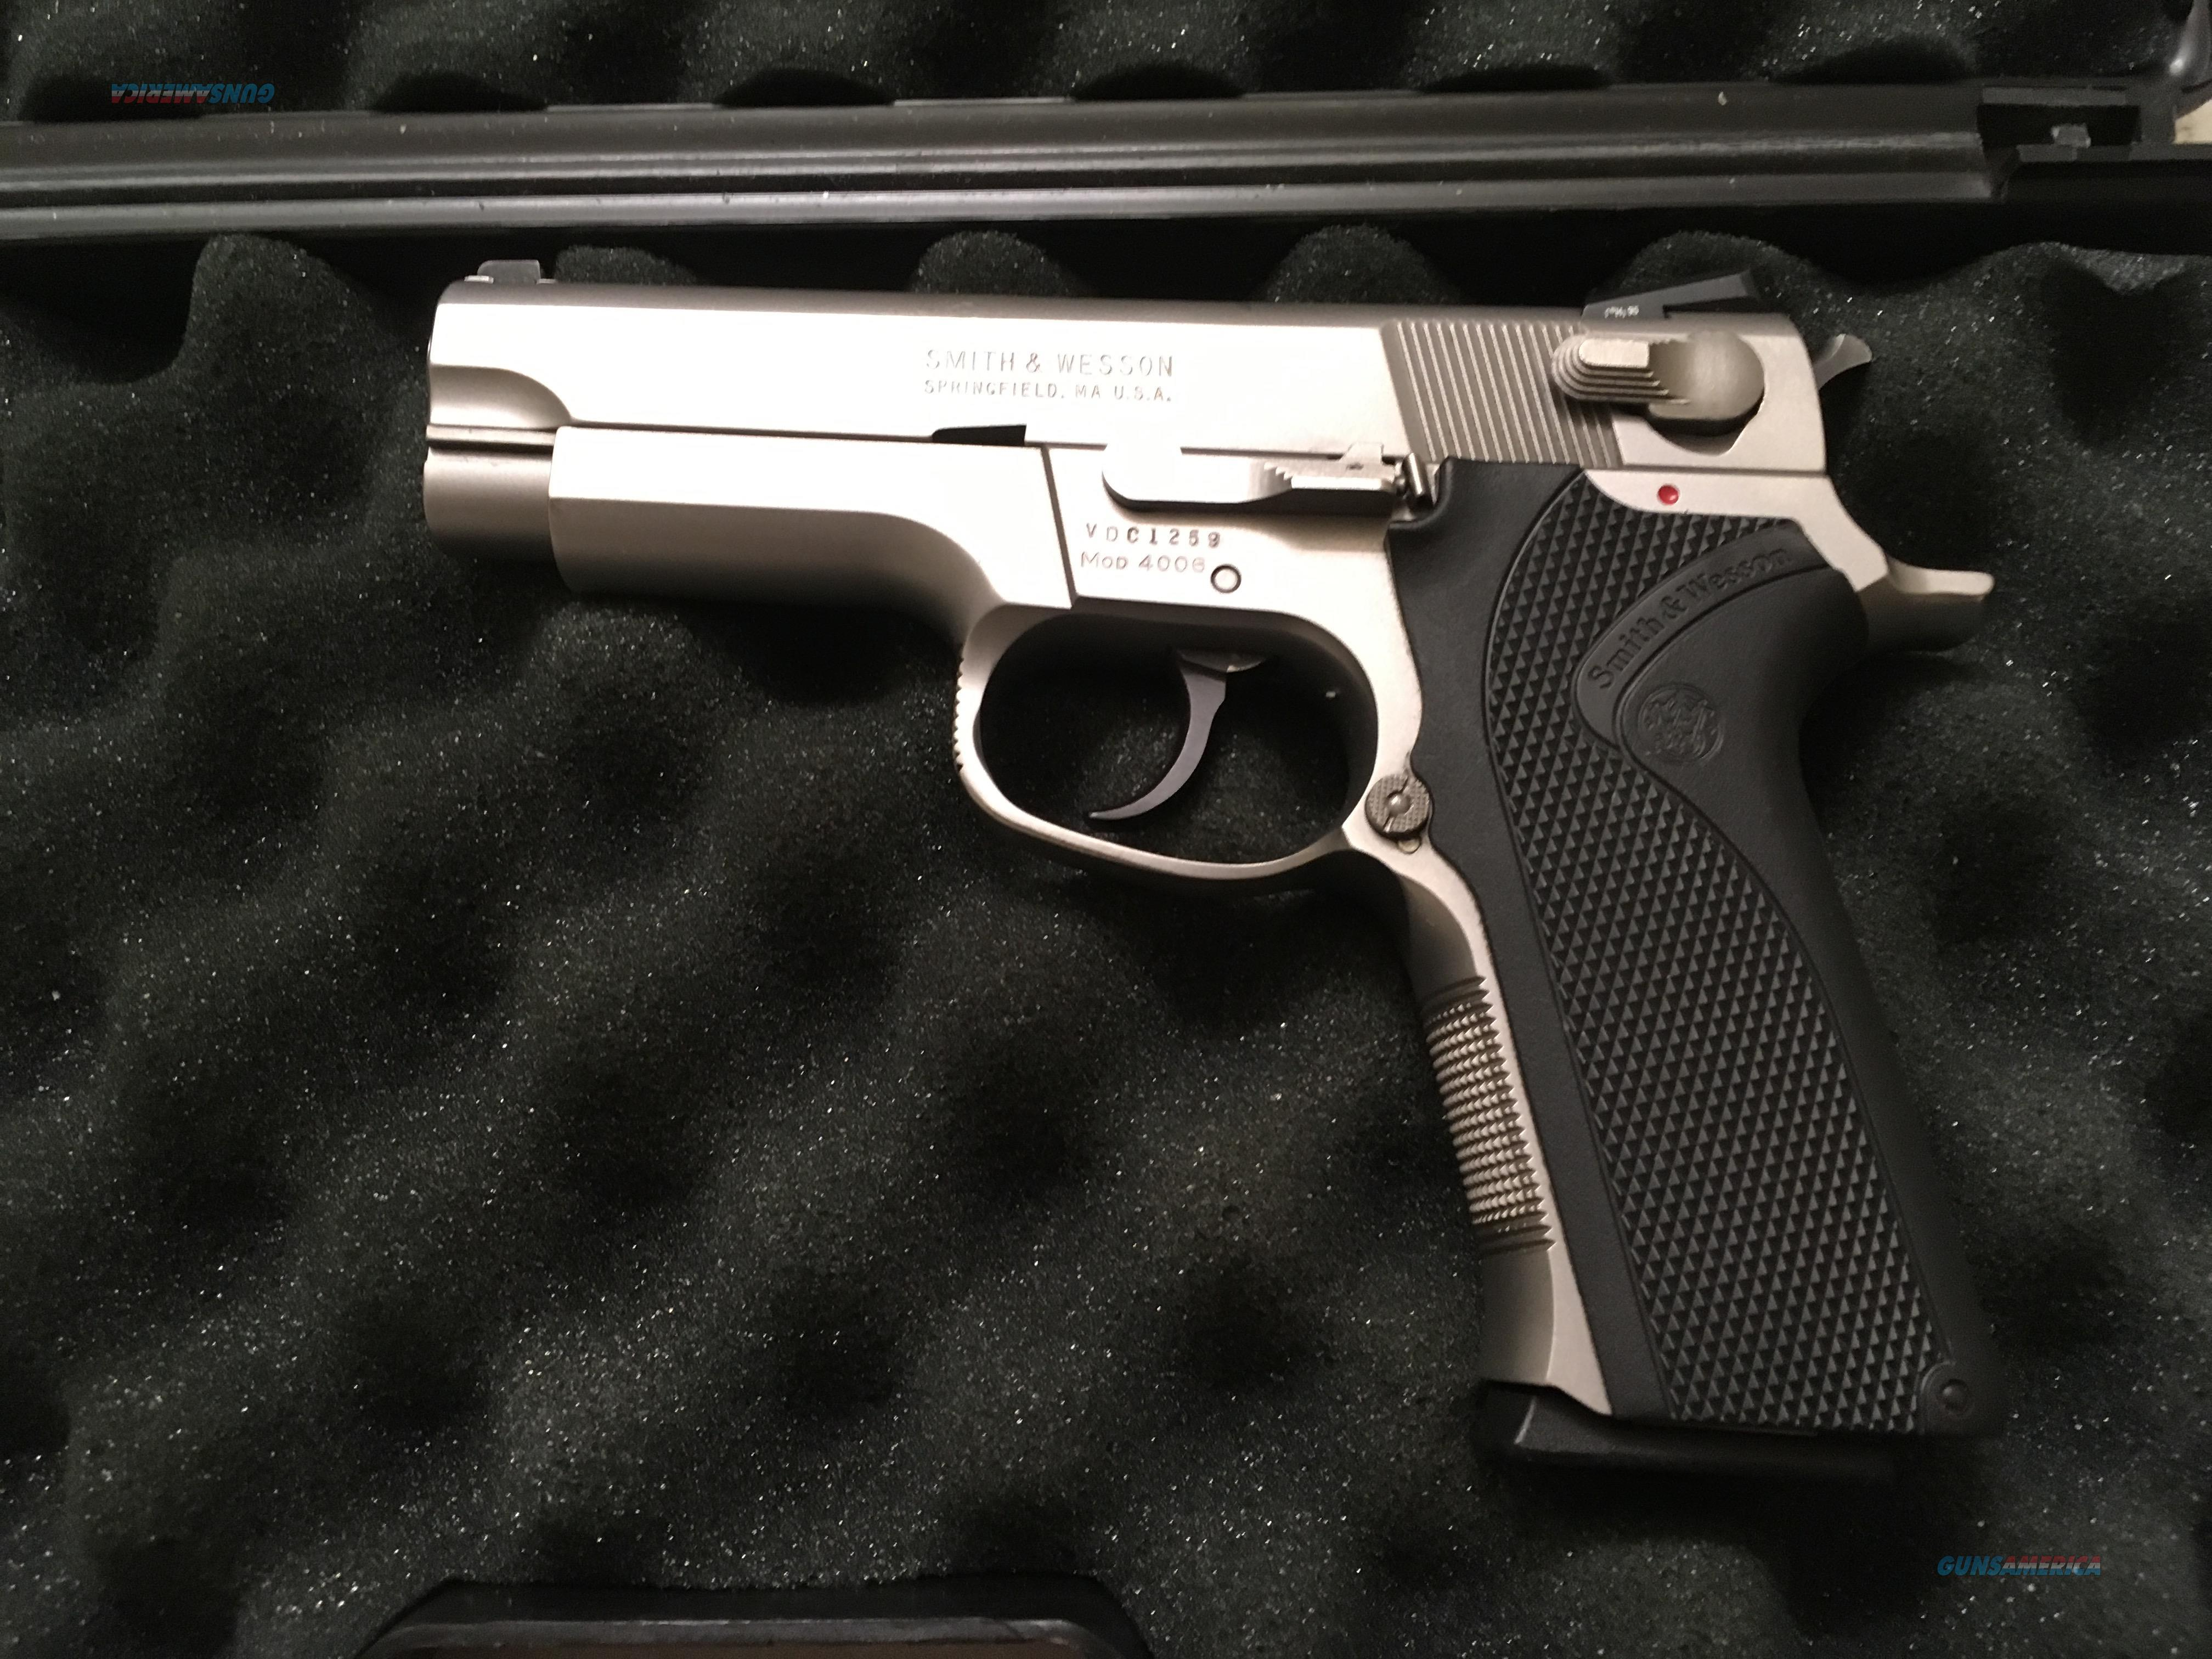 Smith & Wesson M 4006 .40 S&W  Guns > Pistols > Smith & Wesson Pistols - Autos > Steel Frame